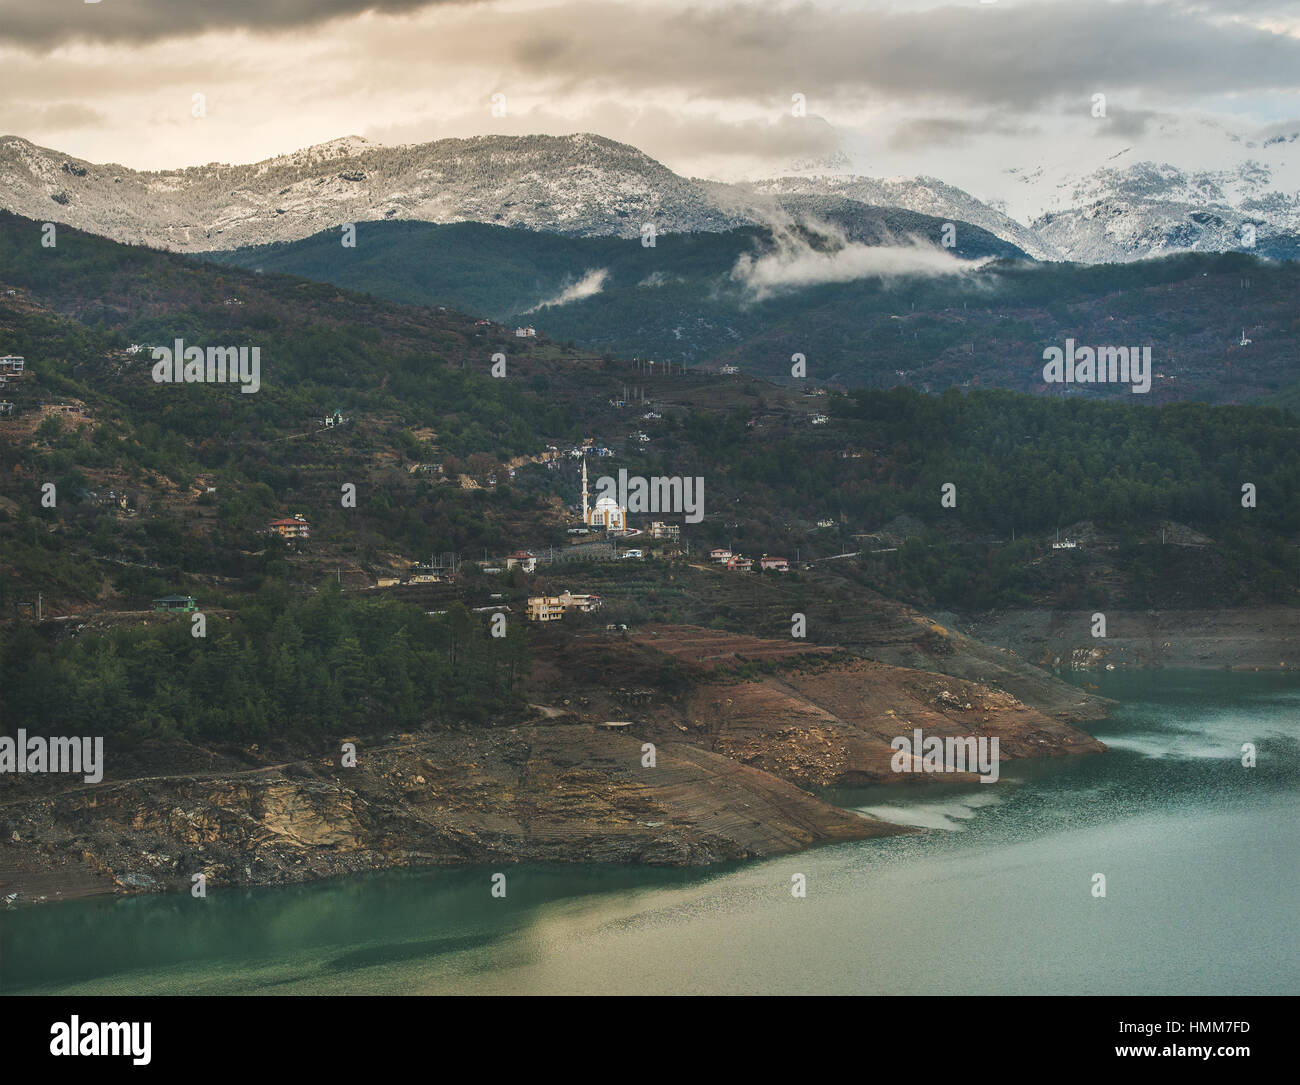 Dim Cay storage pond and mountains covered with snow, Alanya - Stock Image